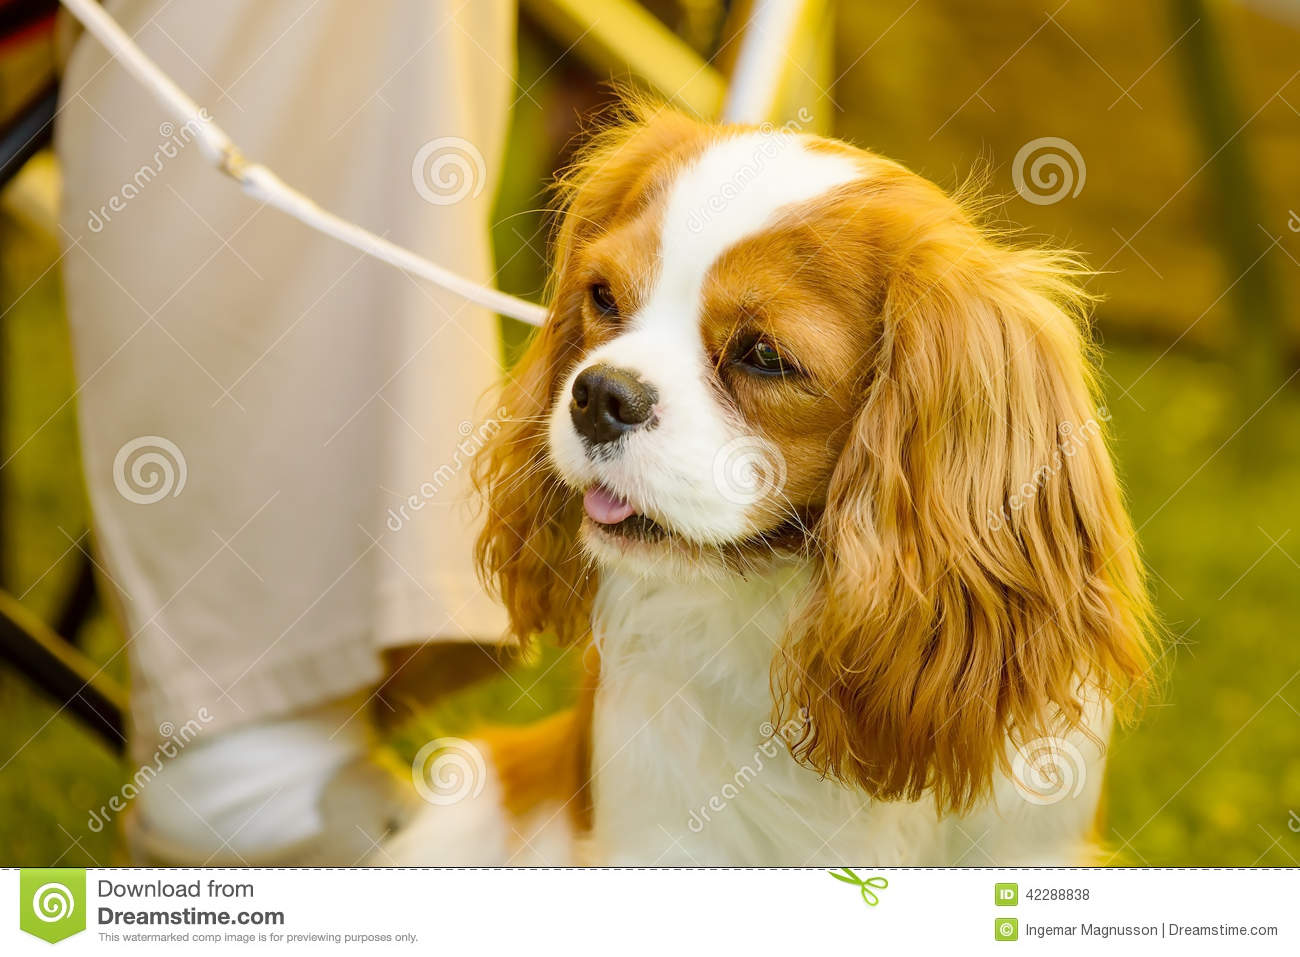 Portrait of small cute dog with long ears.